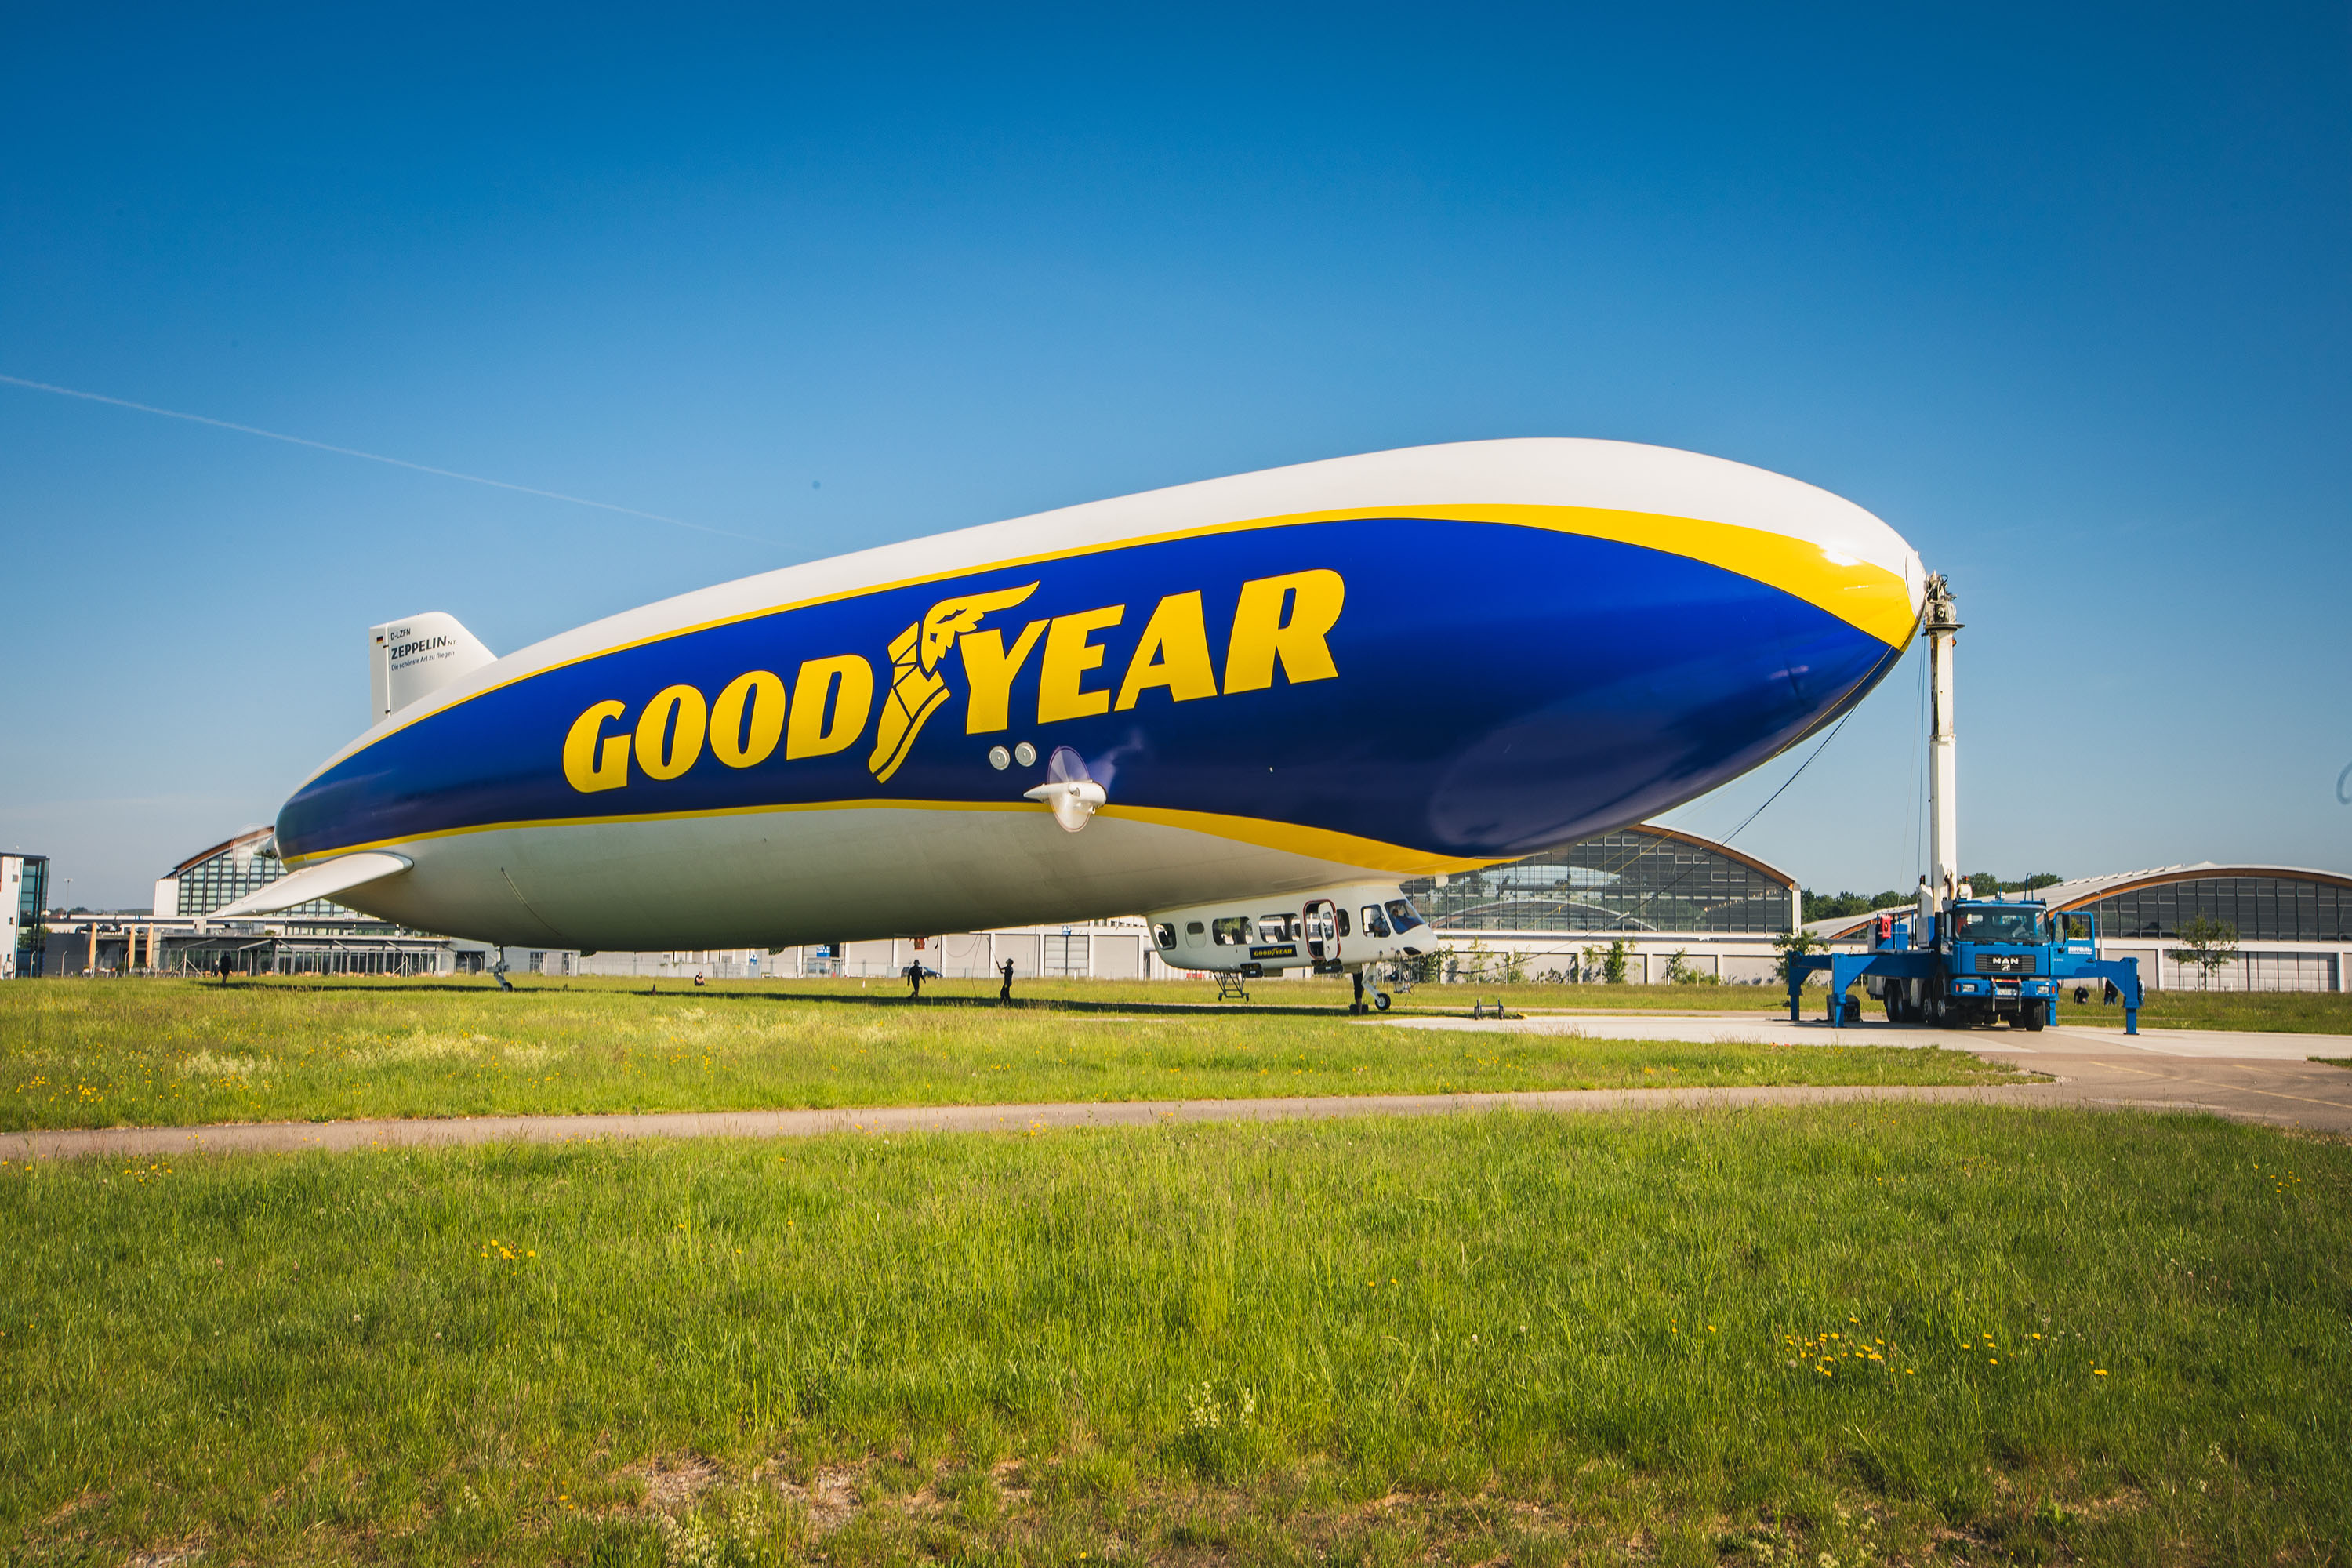 goodyear-blimp-test-flight-germany-04